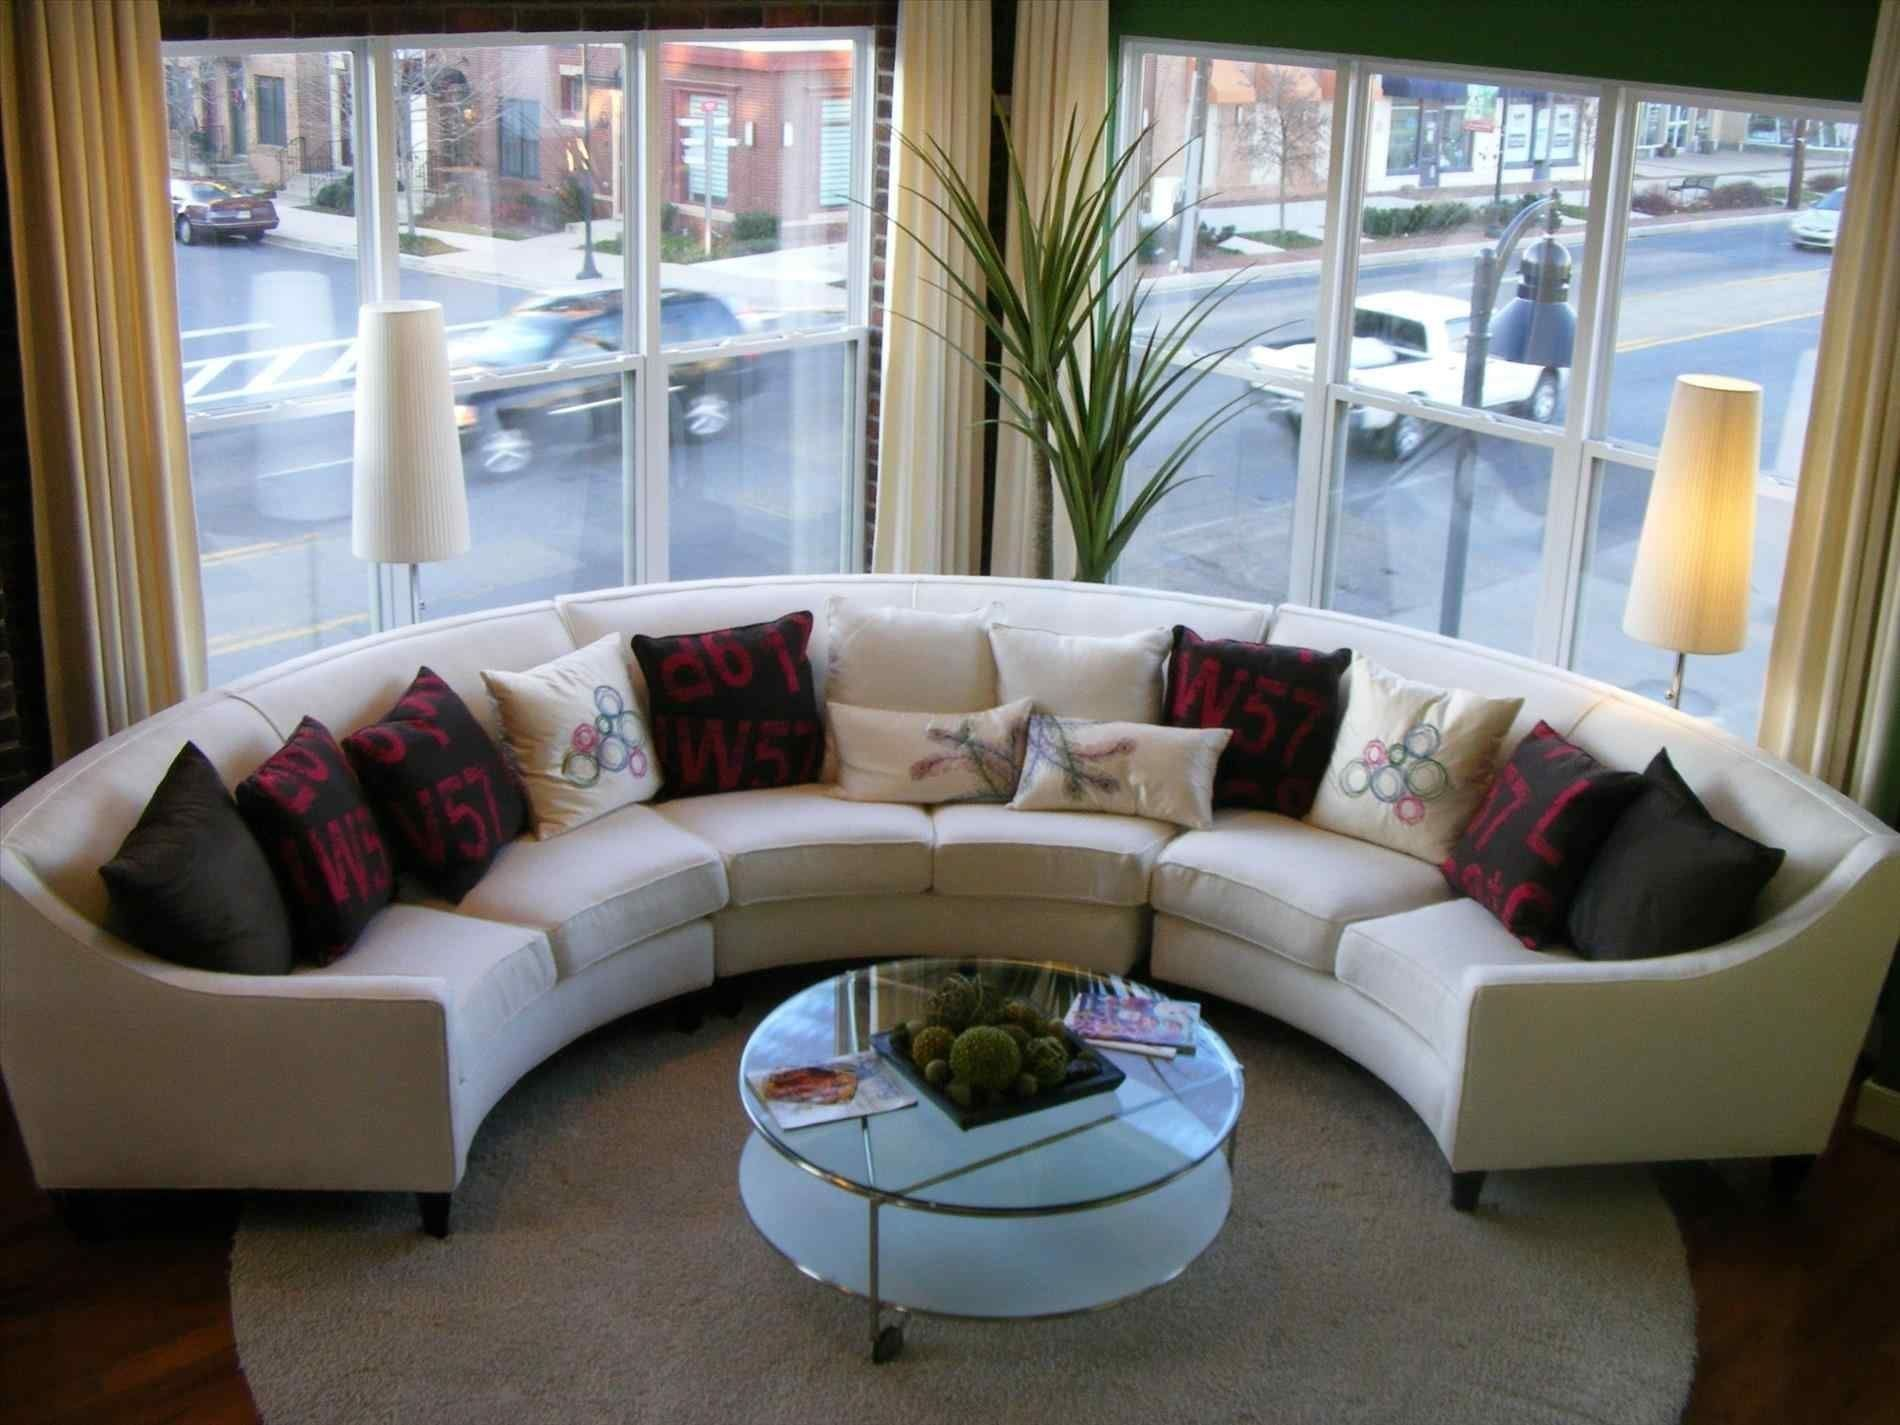 43 Classy Curved Leather Sectional Sofa Ideas Leather